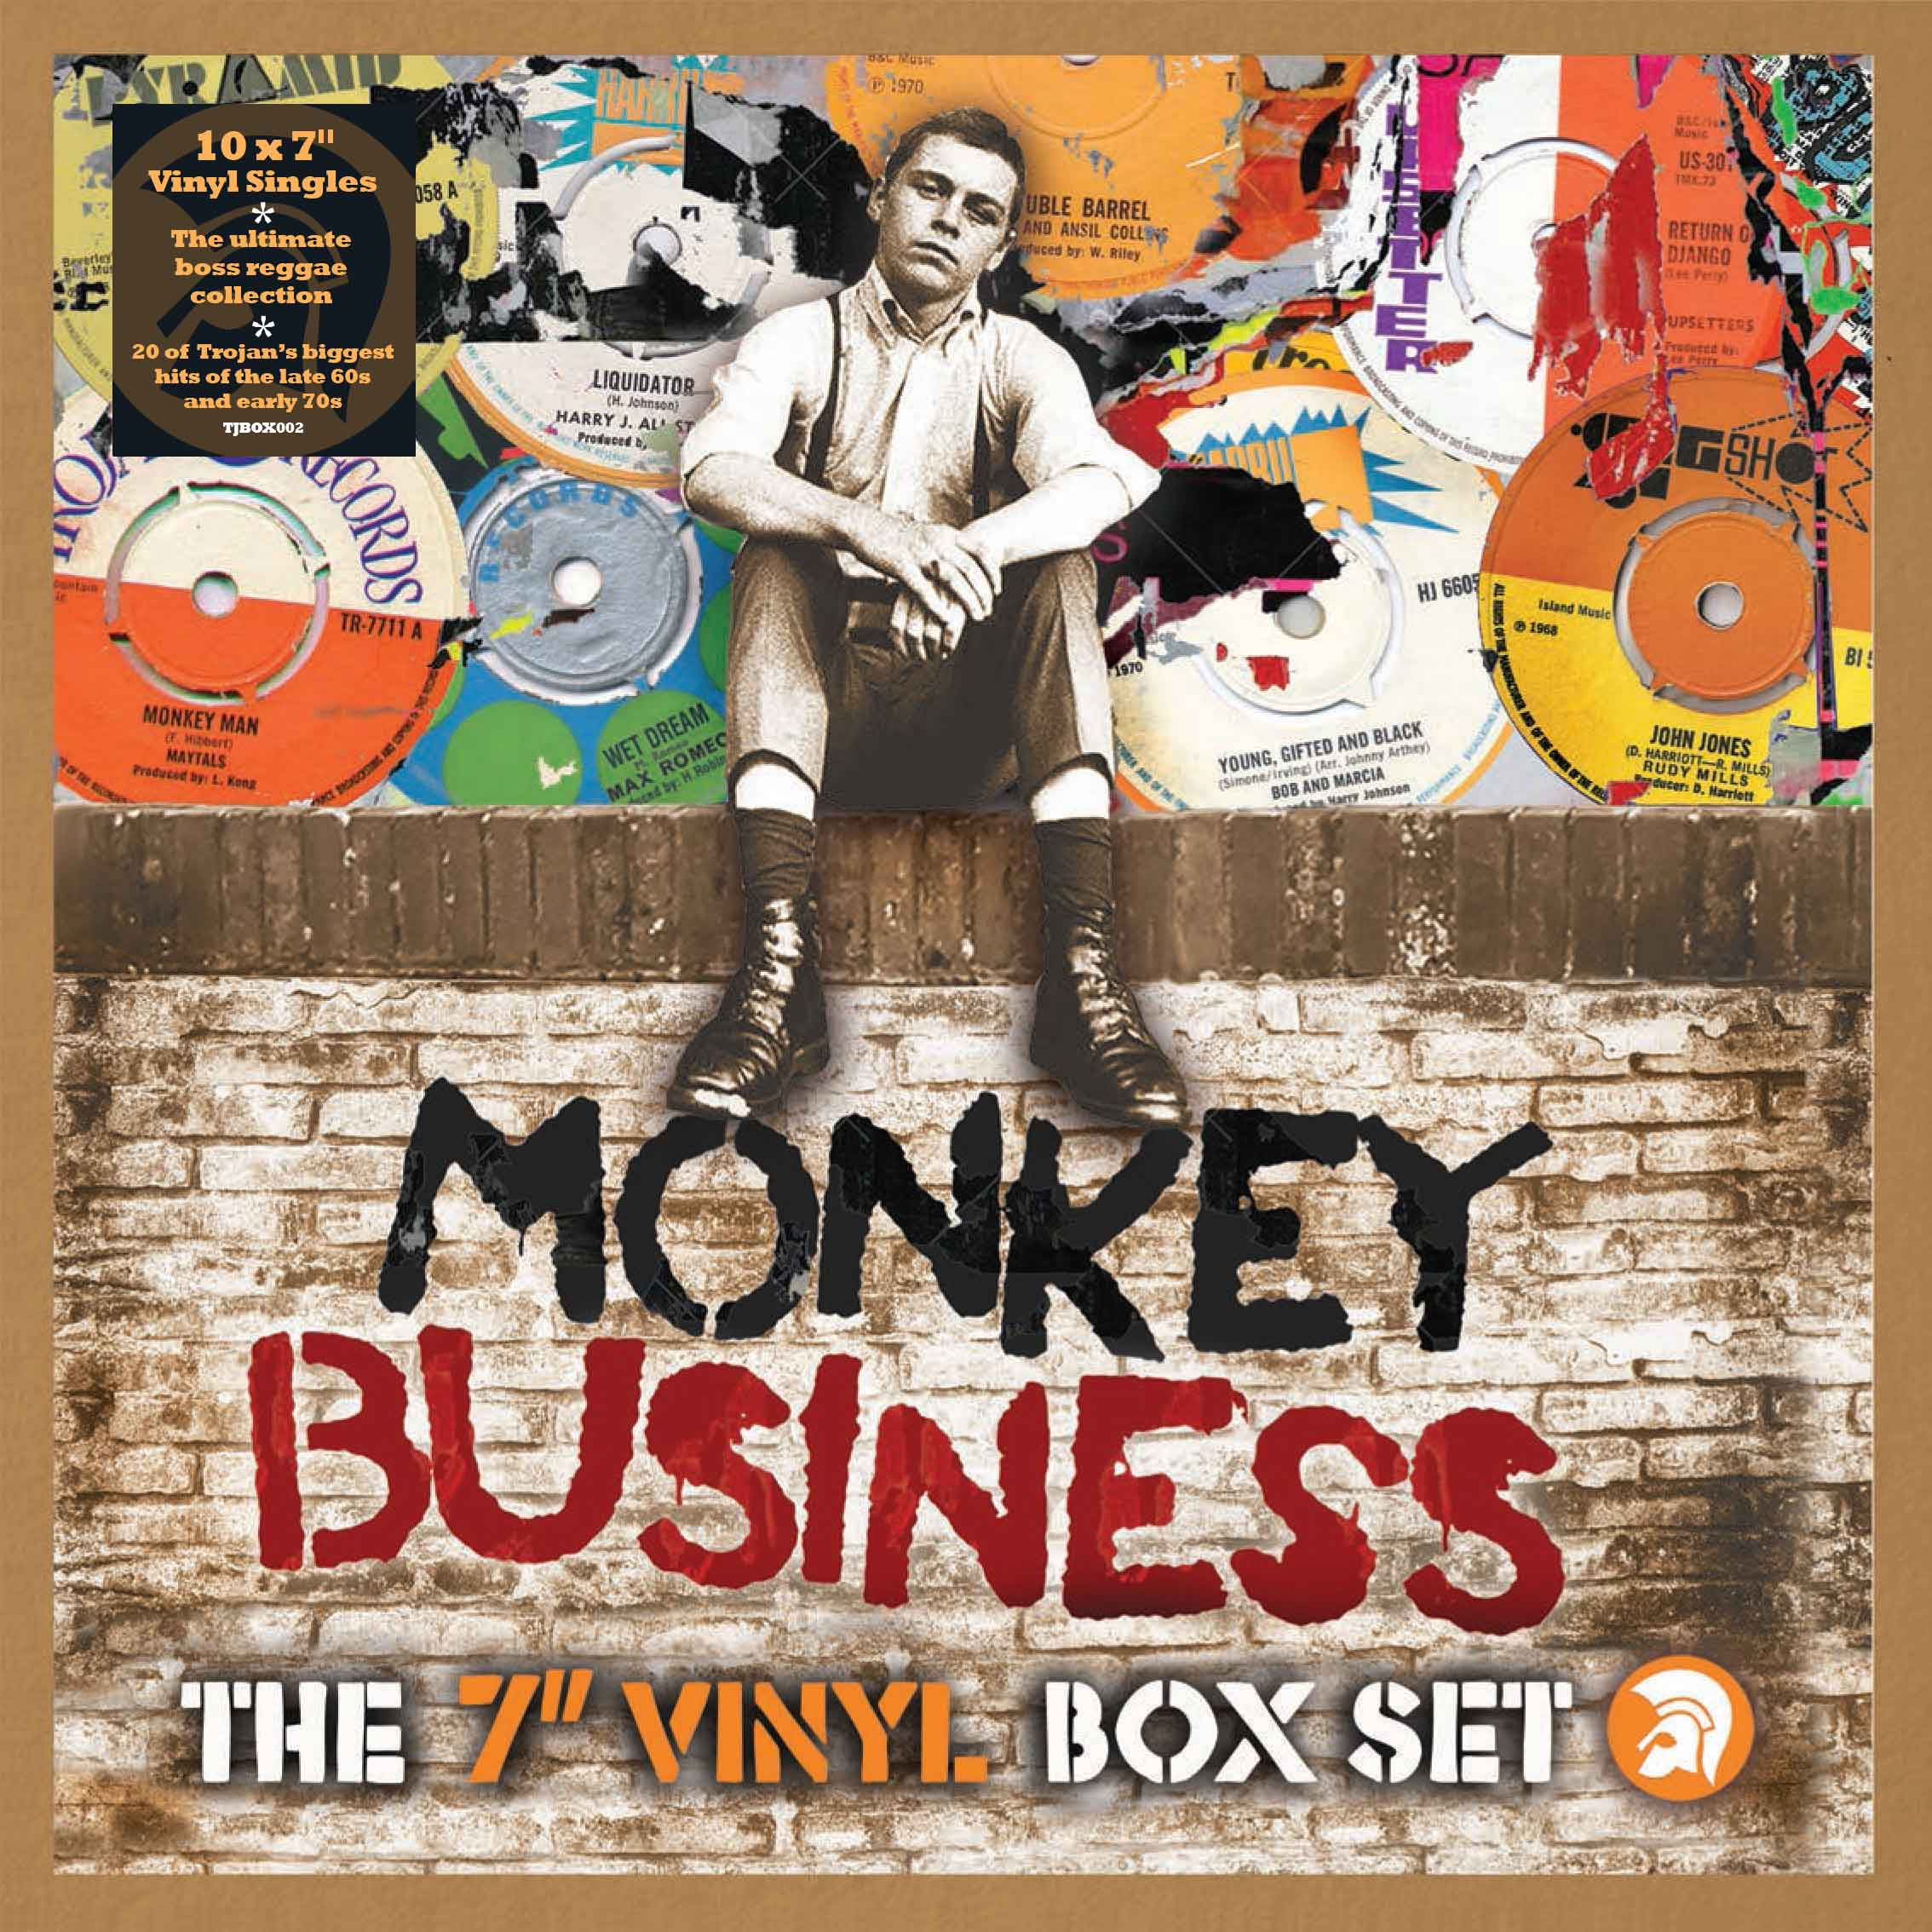 Tjbox002 Trojan Monkey Business 7 Box Lores Sticker 2